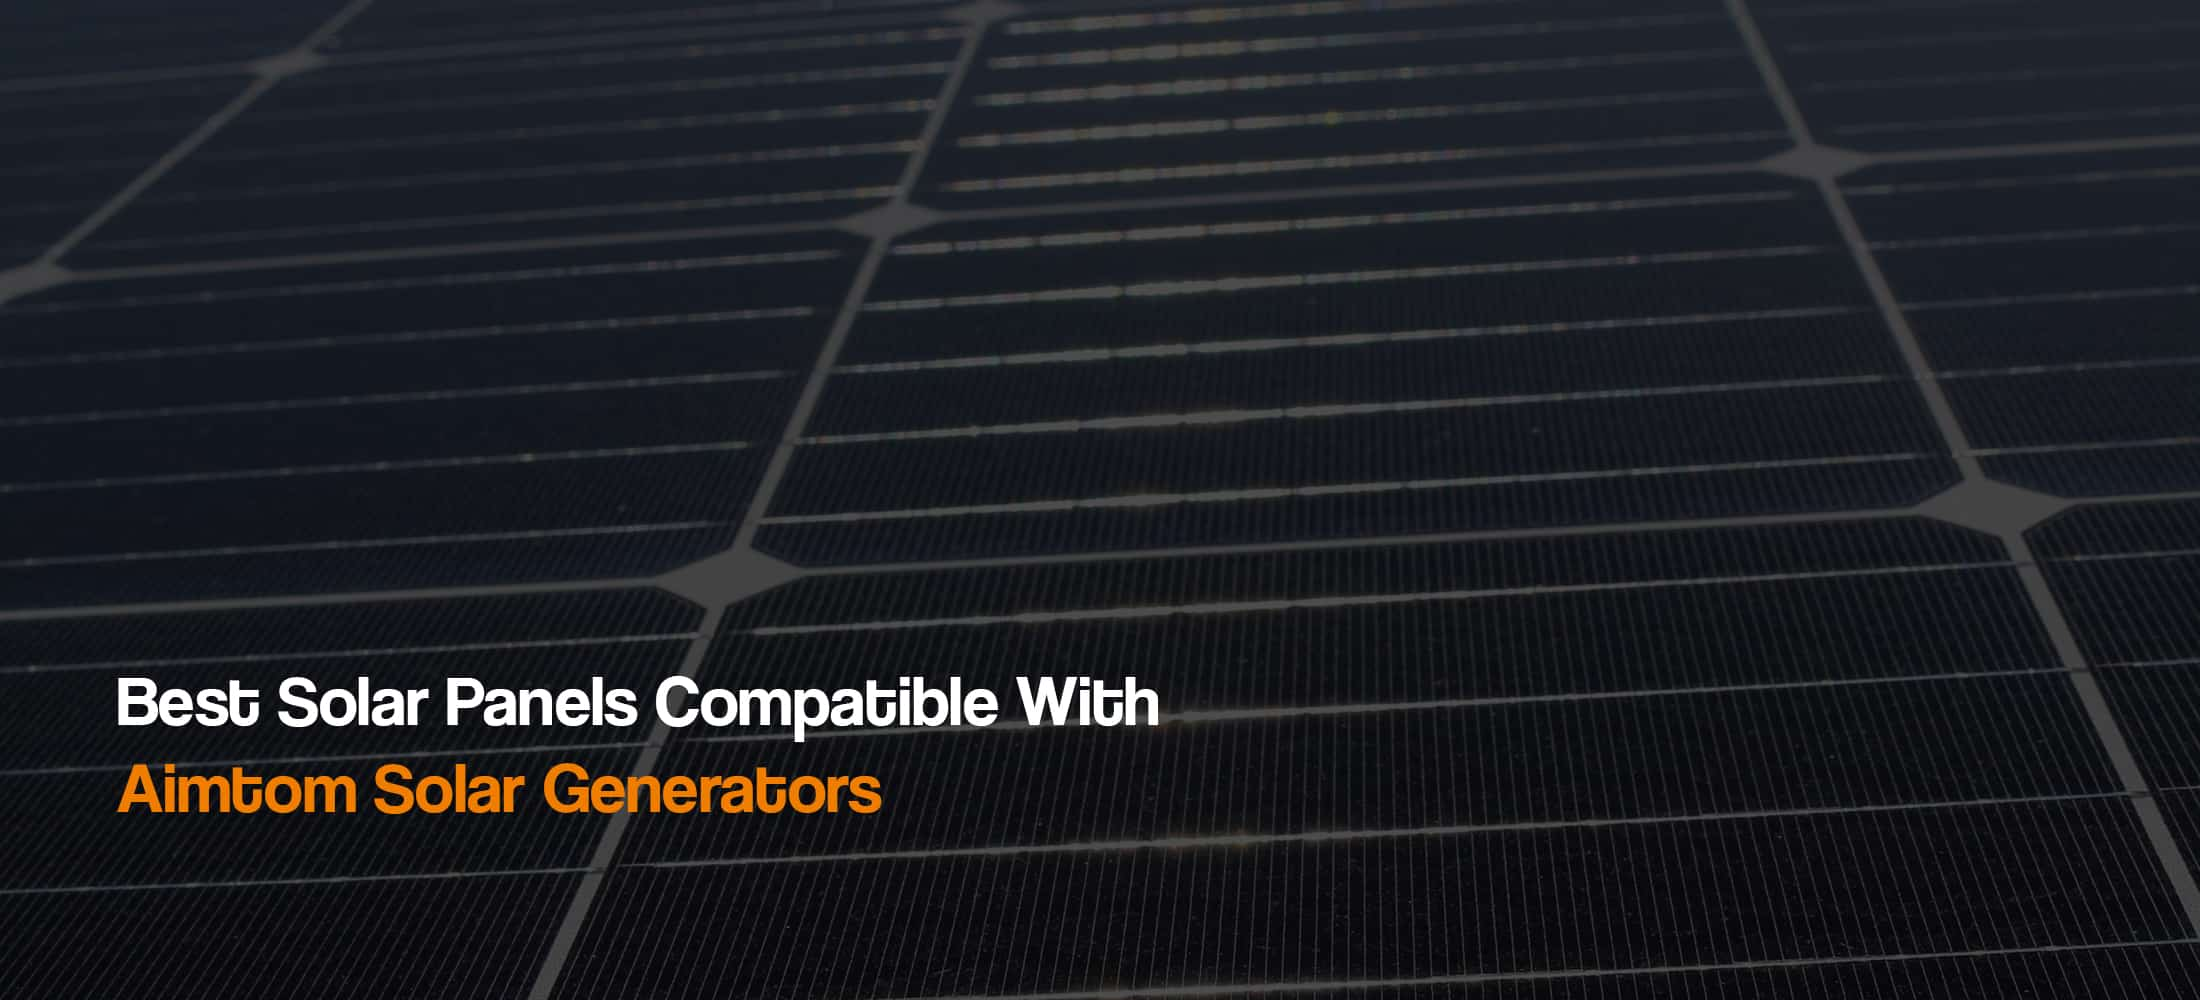 best-solar-panels-compatible-with-aimtom-solar-generators-power-stations-the-solar-addict